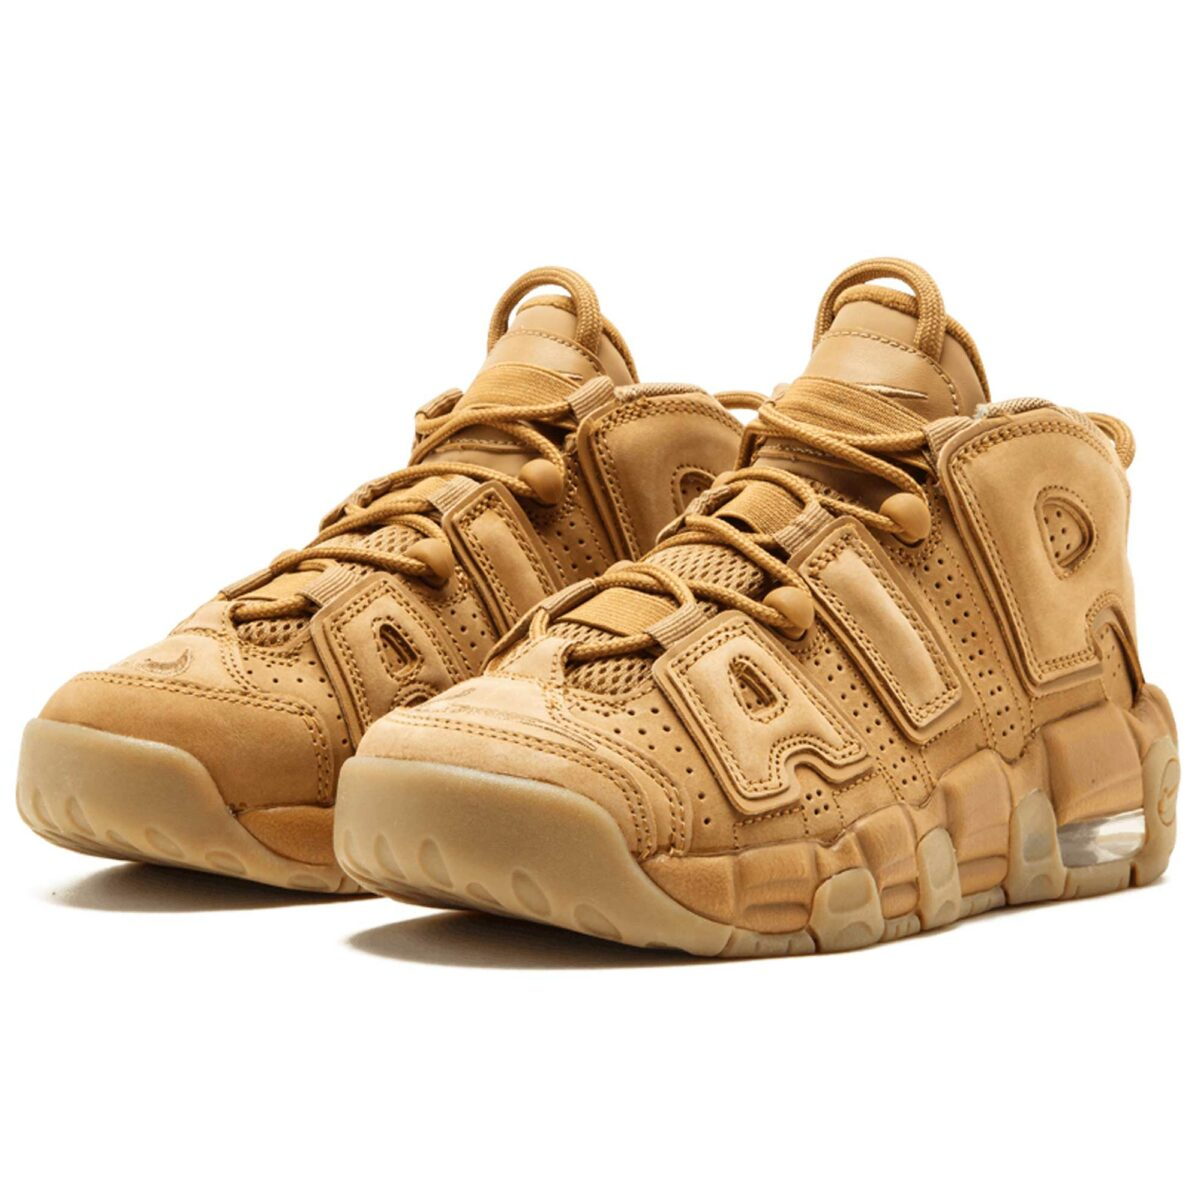 nike air more uptempo se (gs) flax-gum light brown 922845_200 купить